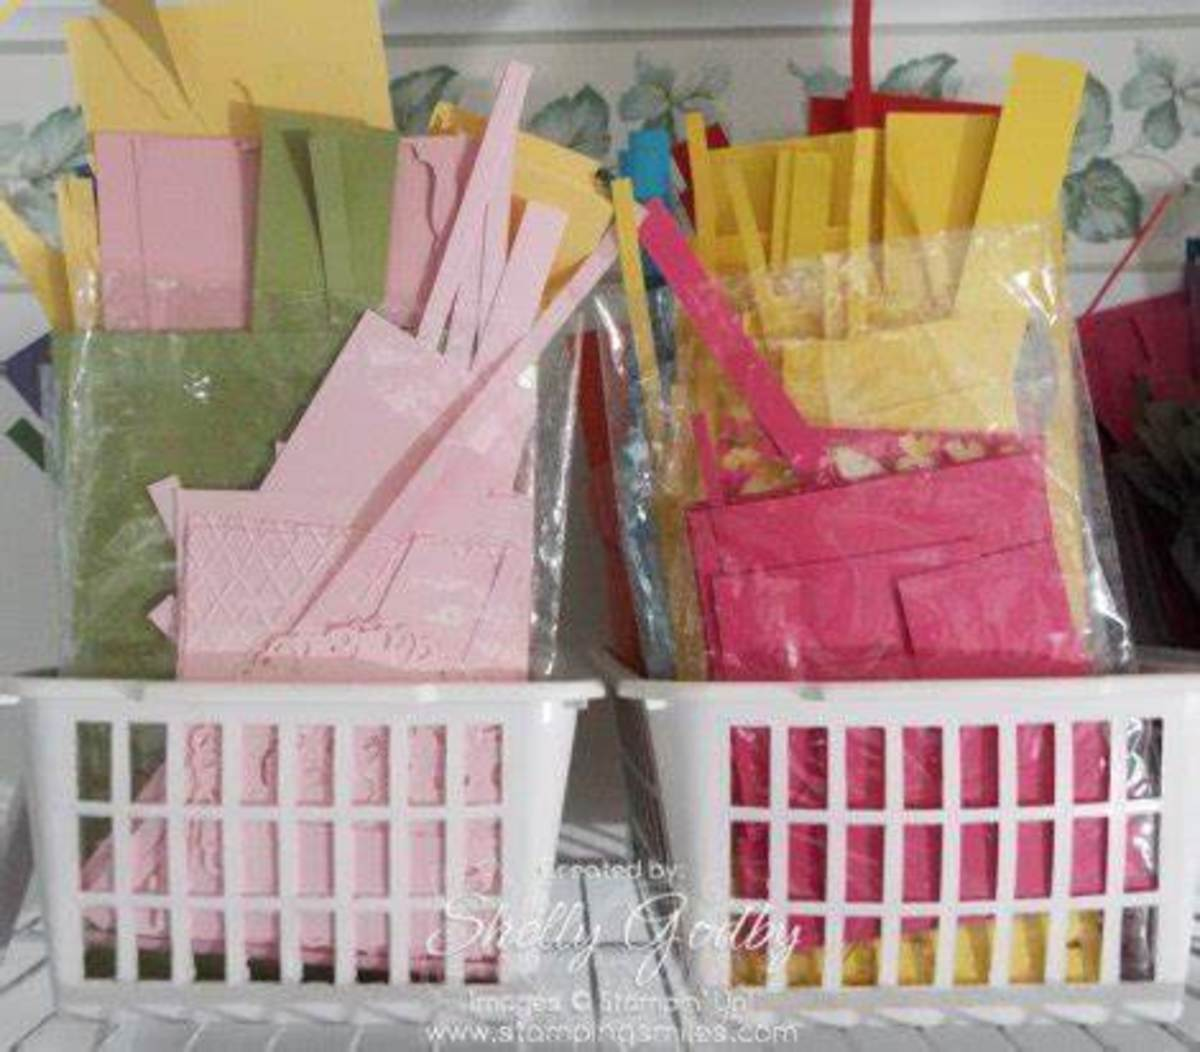 Cellophane or zip lock bags make perfect storage for all those little scraps that you want to keep